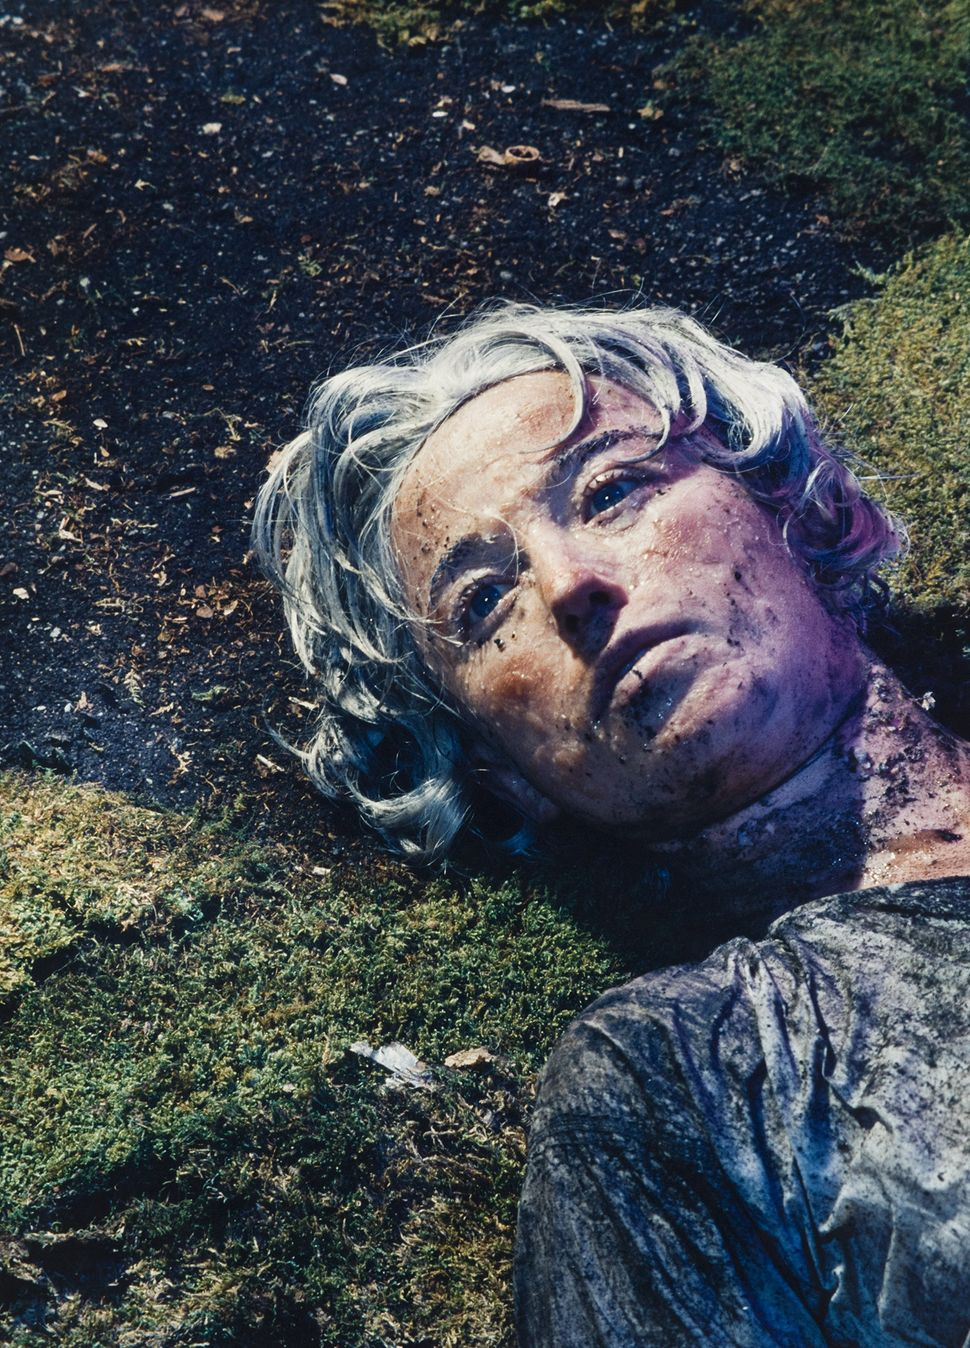 Cindy Sherman, Untitled #153, 1985. Collection Museum of Contemporary Art Chicago, gift of Gerald S. Elliott by exchange. Pho